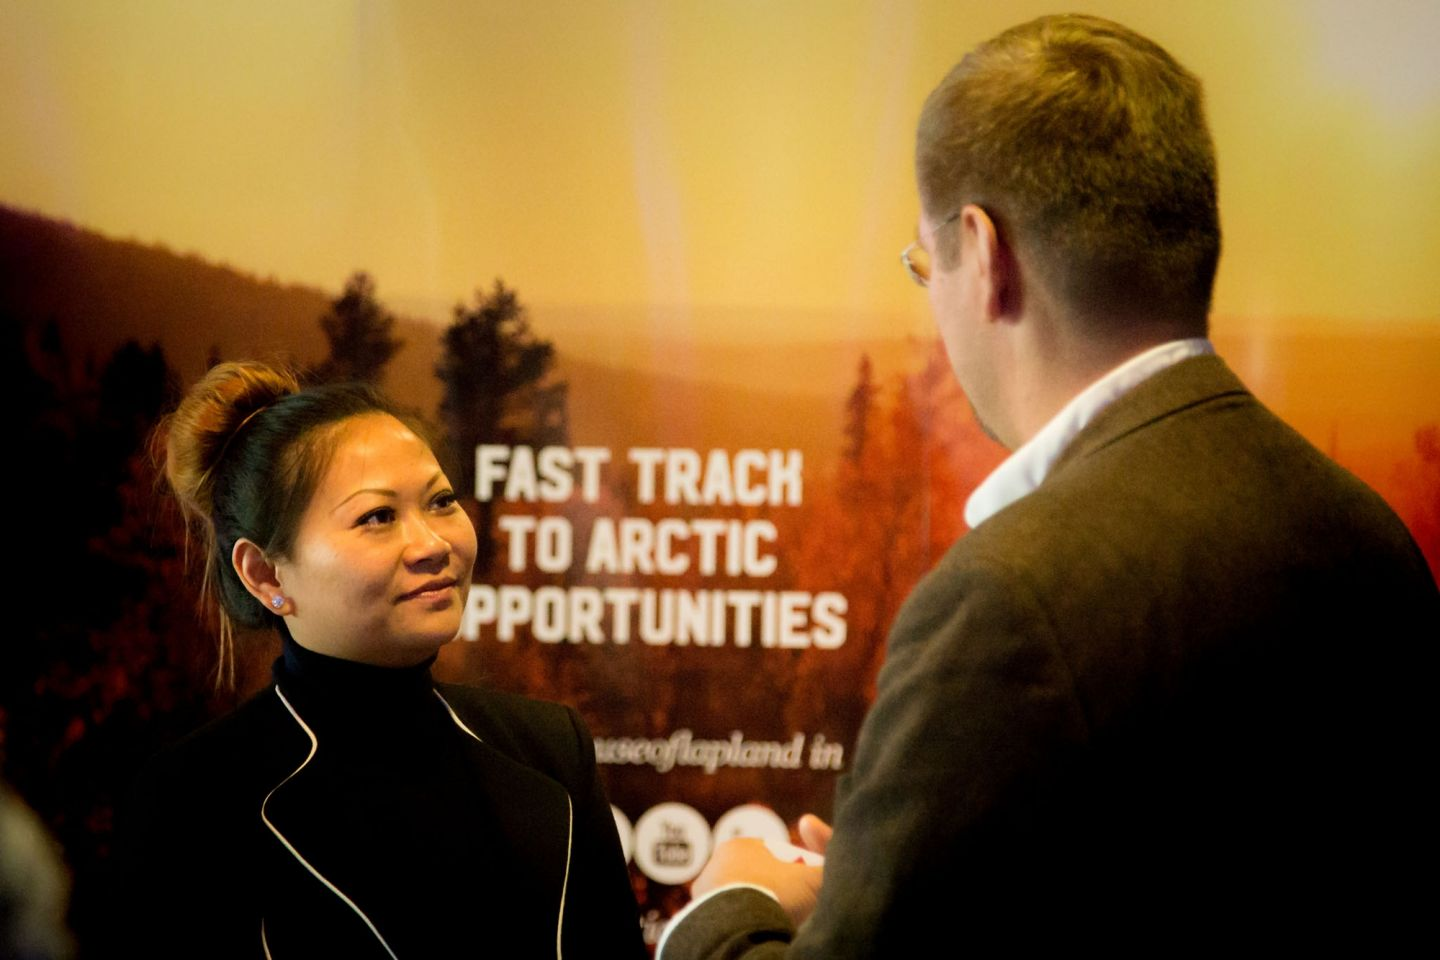 Pohjoinen means business arctic railway talking